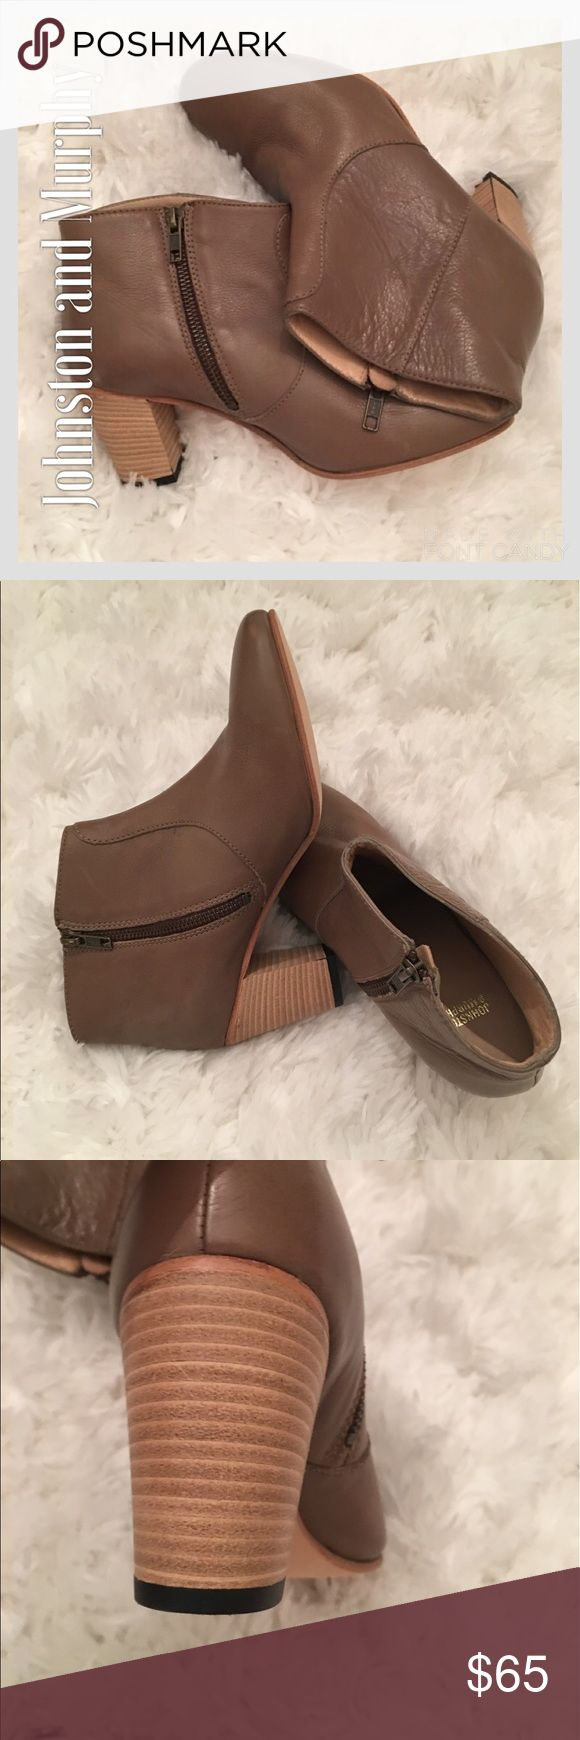 Johnston & Murphy Leather Tan Ankle Boots Johnston & Murphy Leather Tan Ankle Boots. Like new. Johnston & Murphy Shoes Ankle Boots & Booties